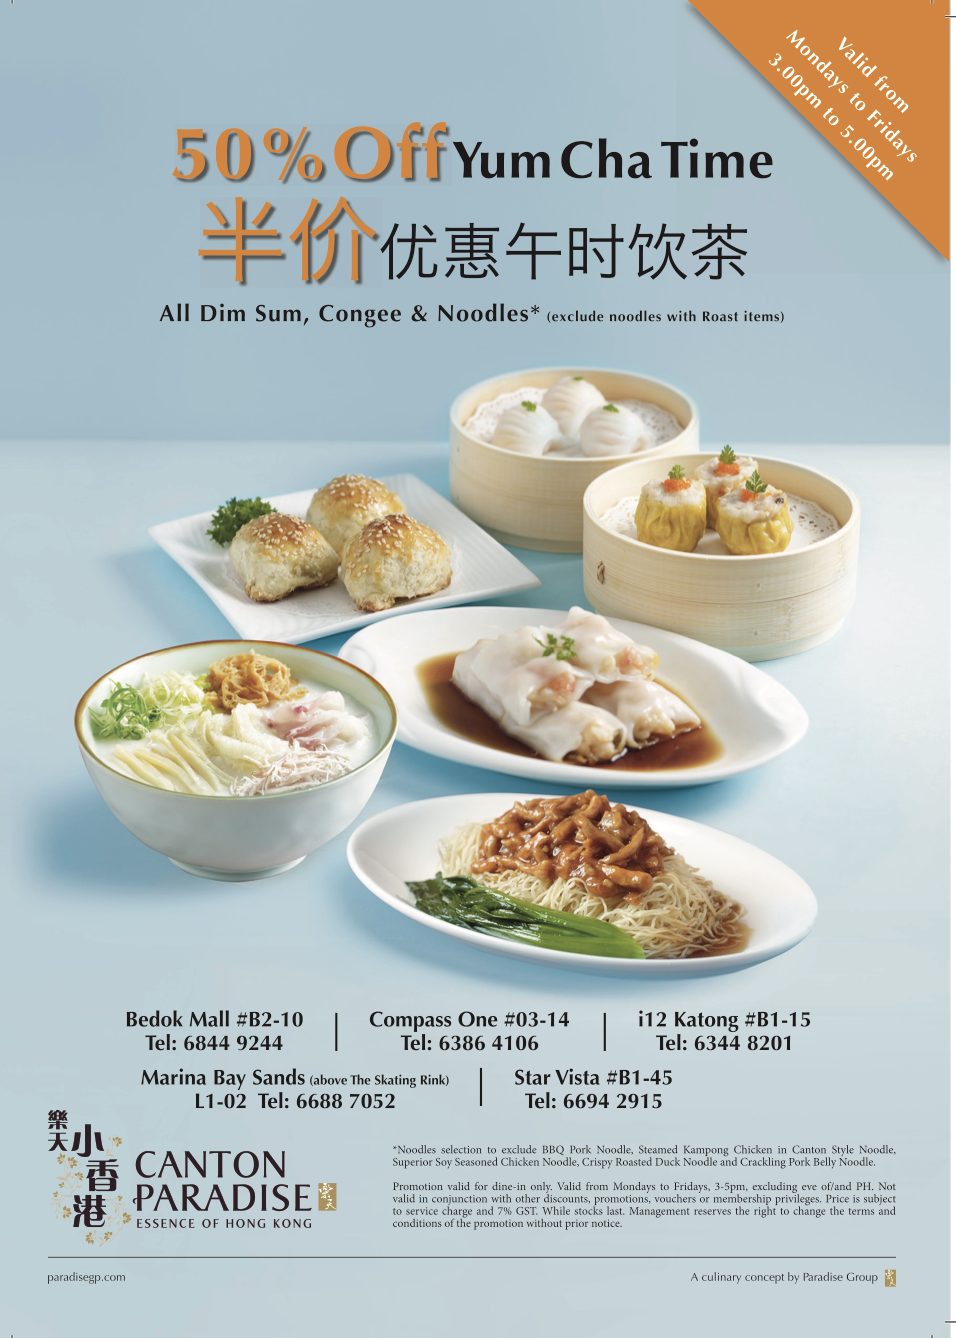 Good 50% Dimsum Tea Promo 3pm-5.15pm Weekdays @ Canton Paradise ...